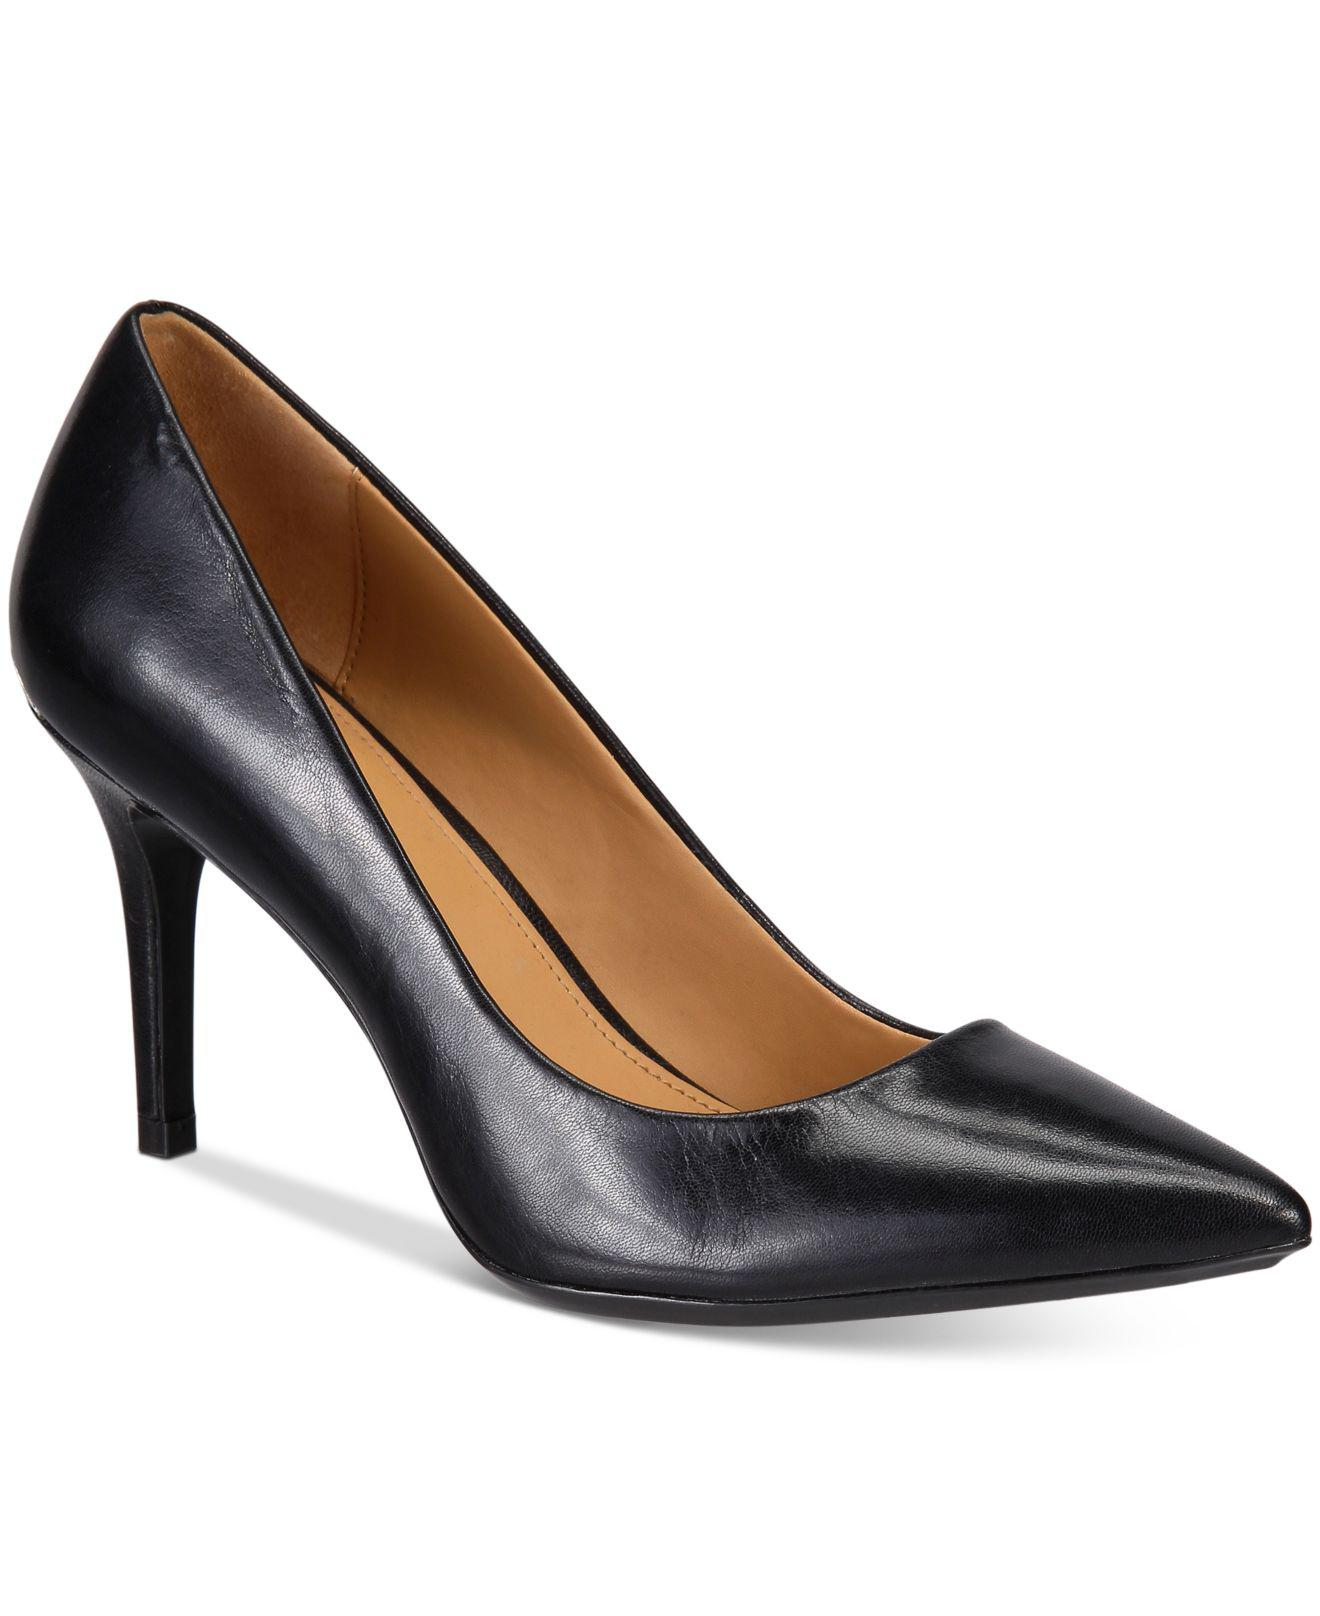 a013eeba0bc Lyst - Calvin Klein Gayle Pumps in Black - Save 51%